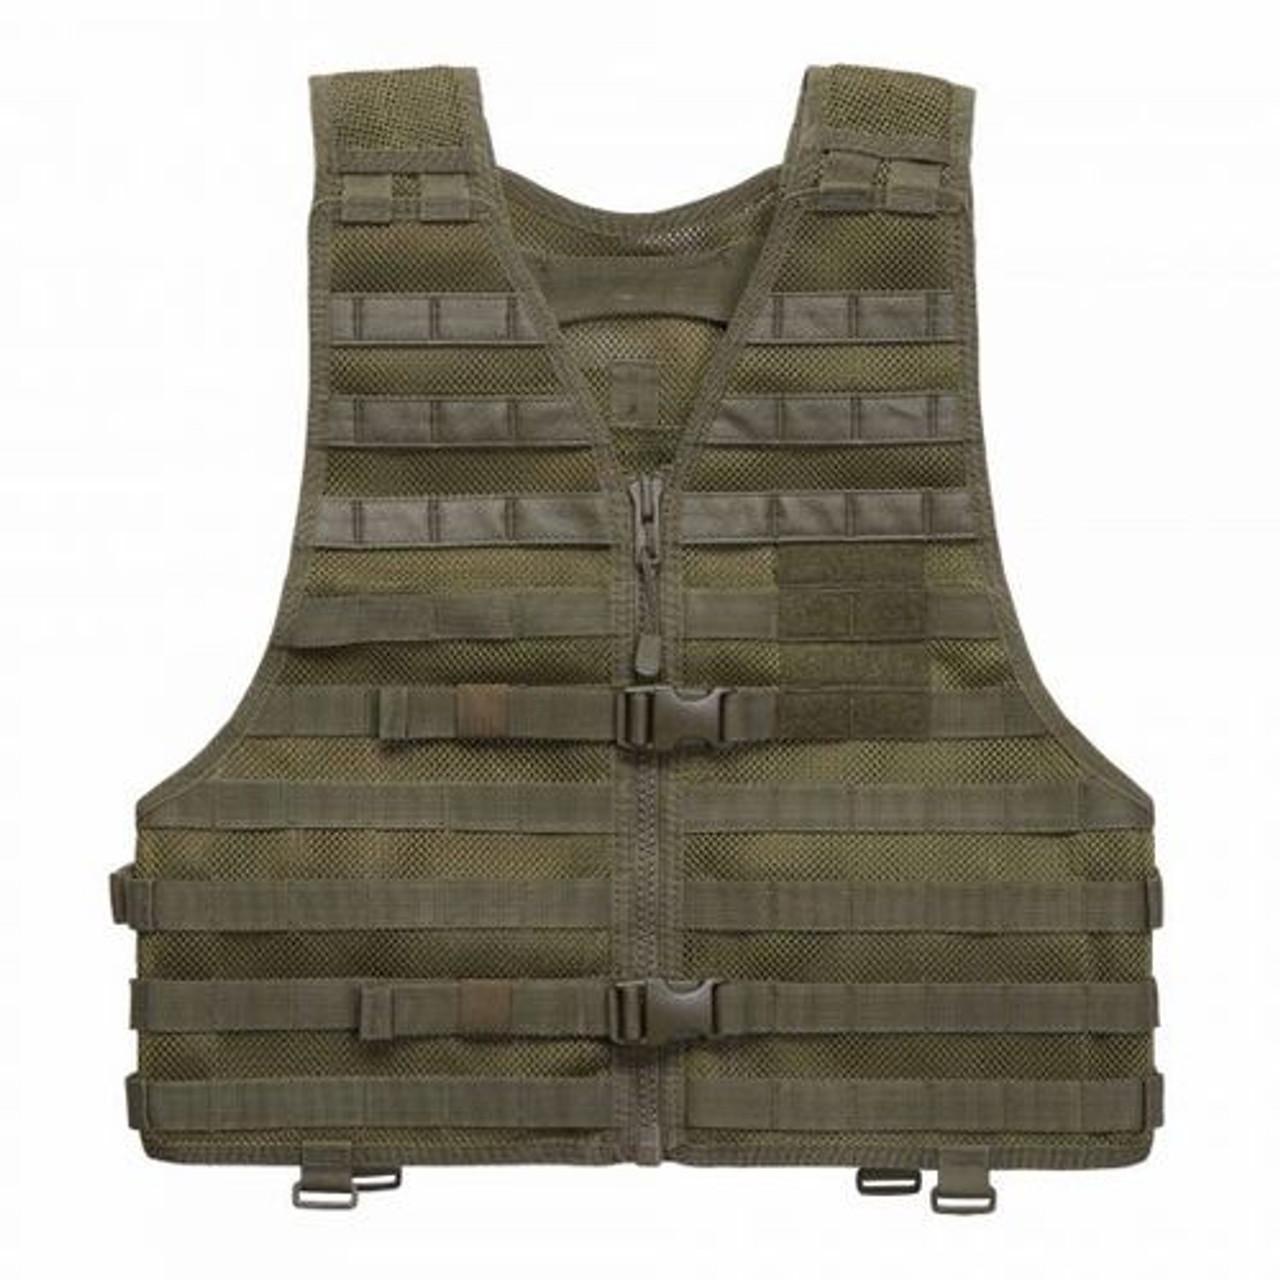 5.11 Tactical VTAC® LBE Tactical MOLLE Vest, Ready Pocket on Chest, Stiffened Mesh Nylon, available in black, flat dark earth,  TAC OD, or sandstone 58631